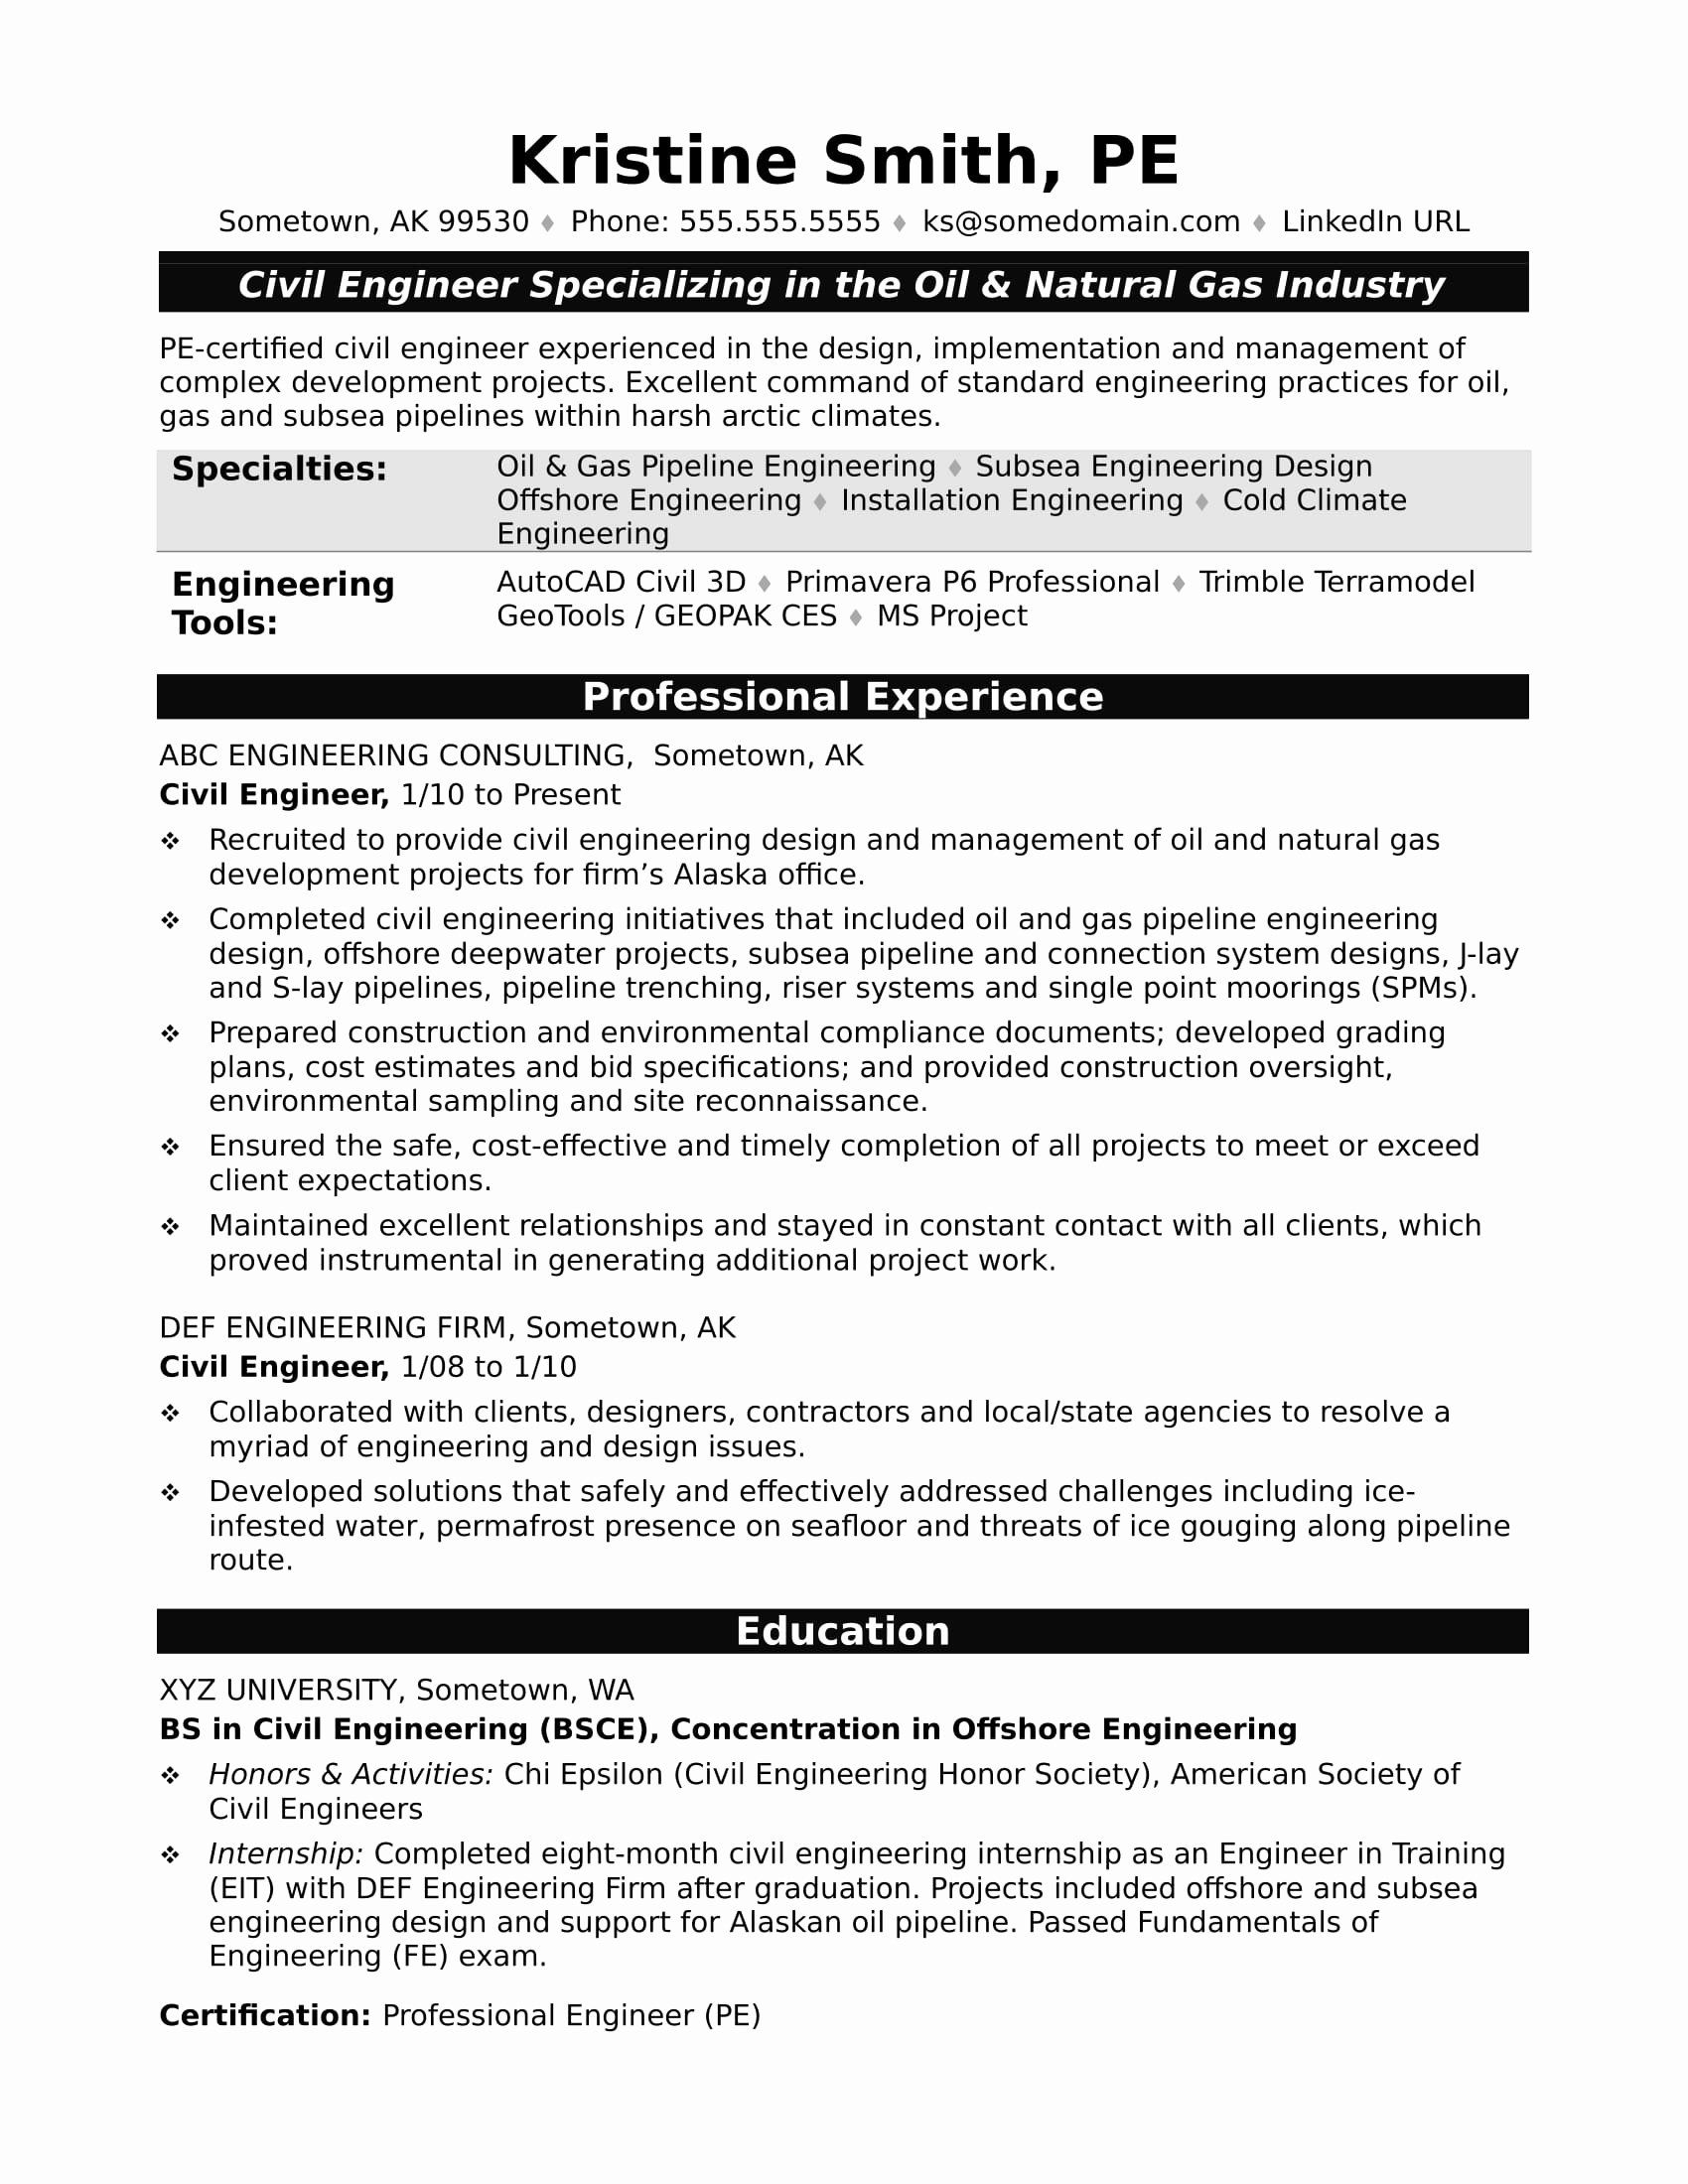 25 Civil Engineer Intern Resume Civil Engineer Resume